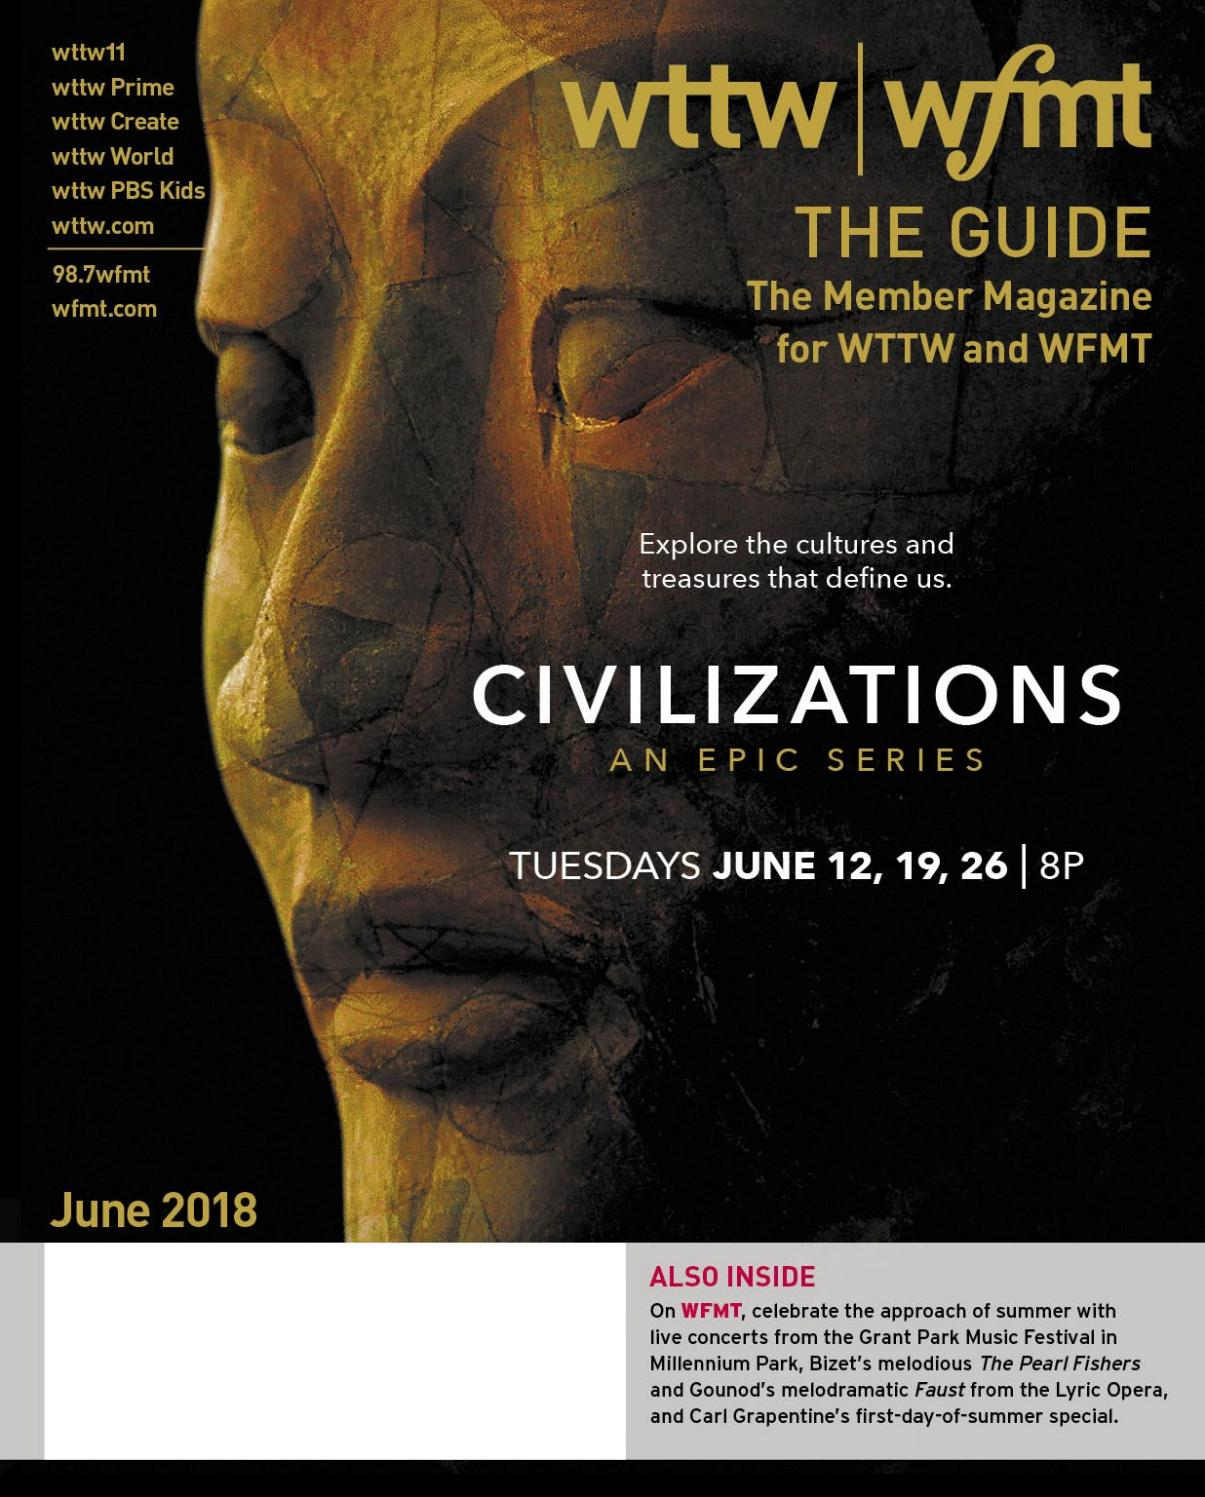 The Guide | June 2018 by WTTW Chicago - issuu